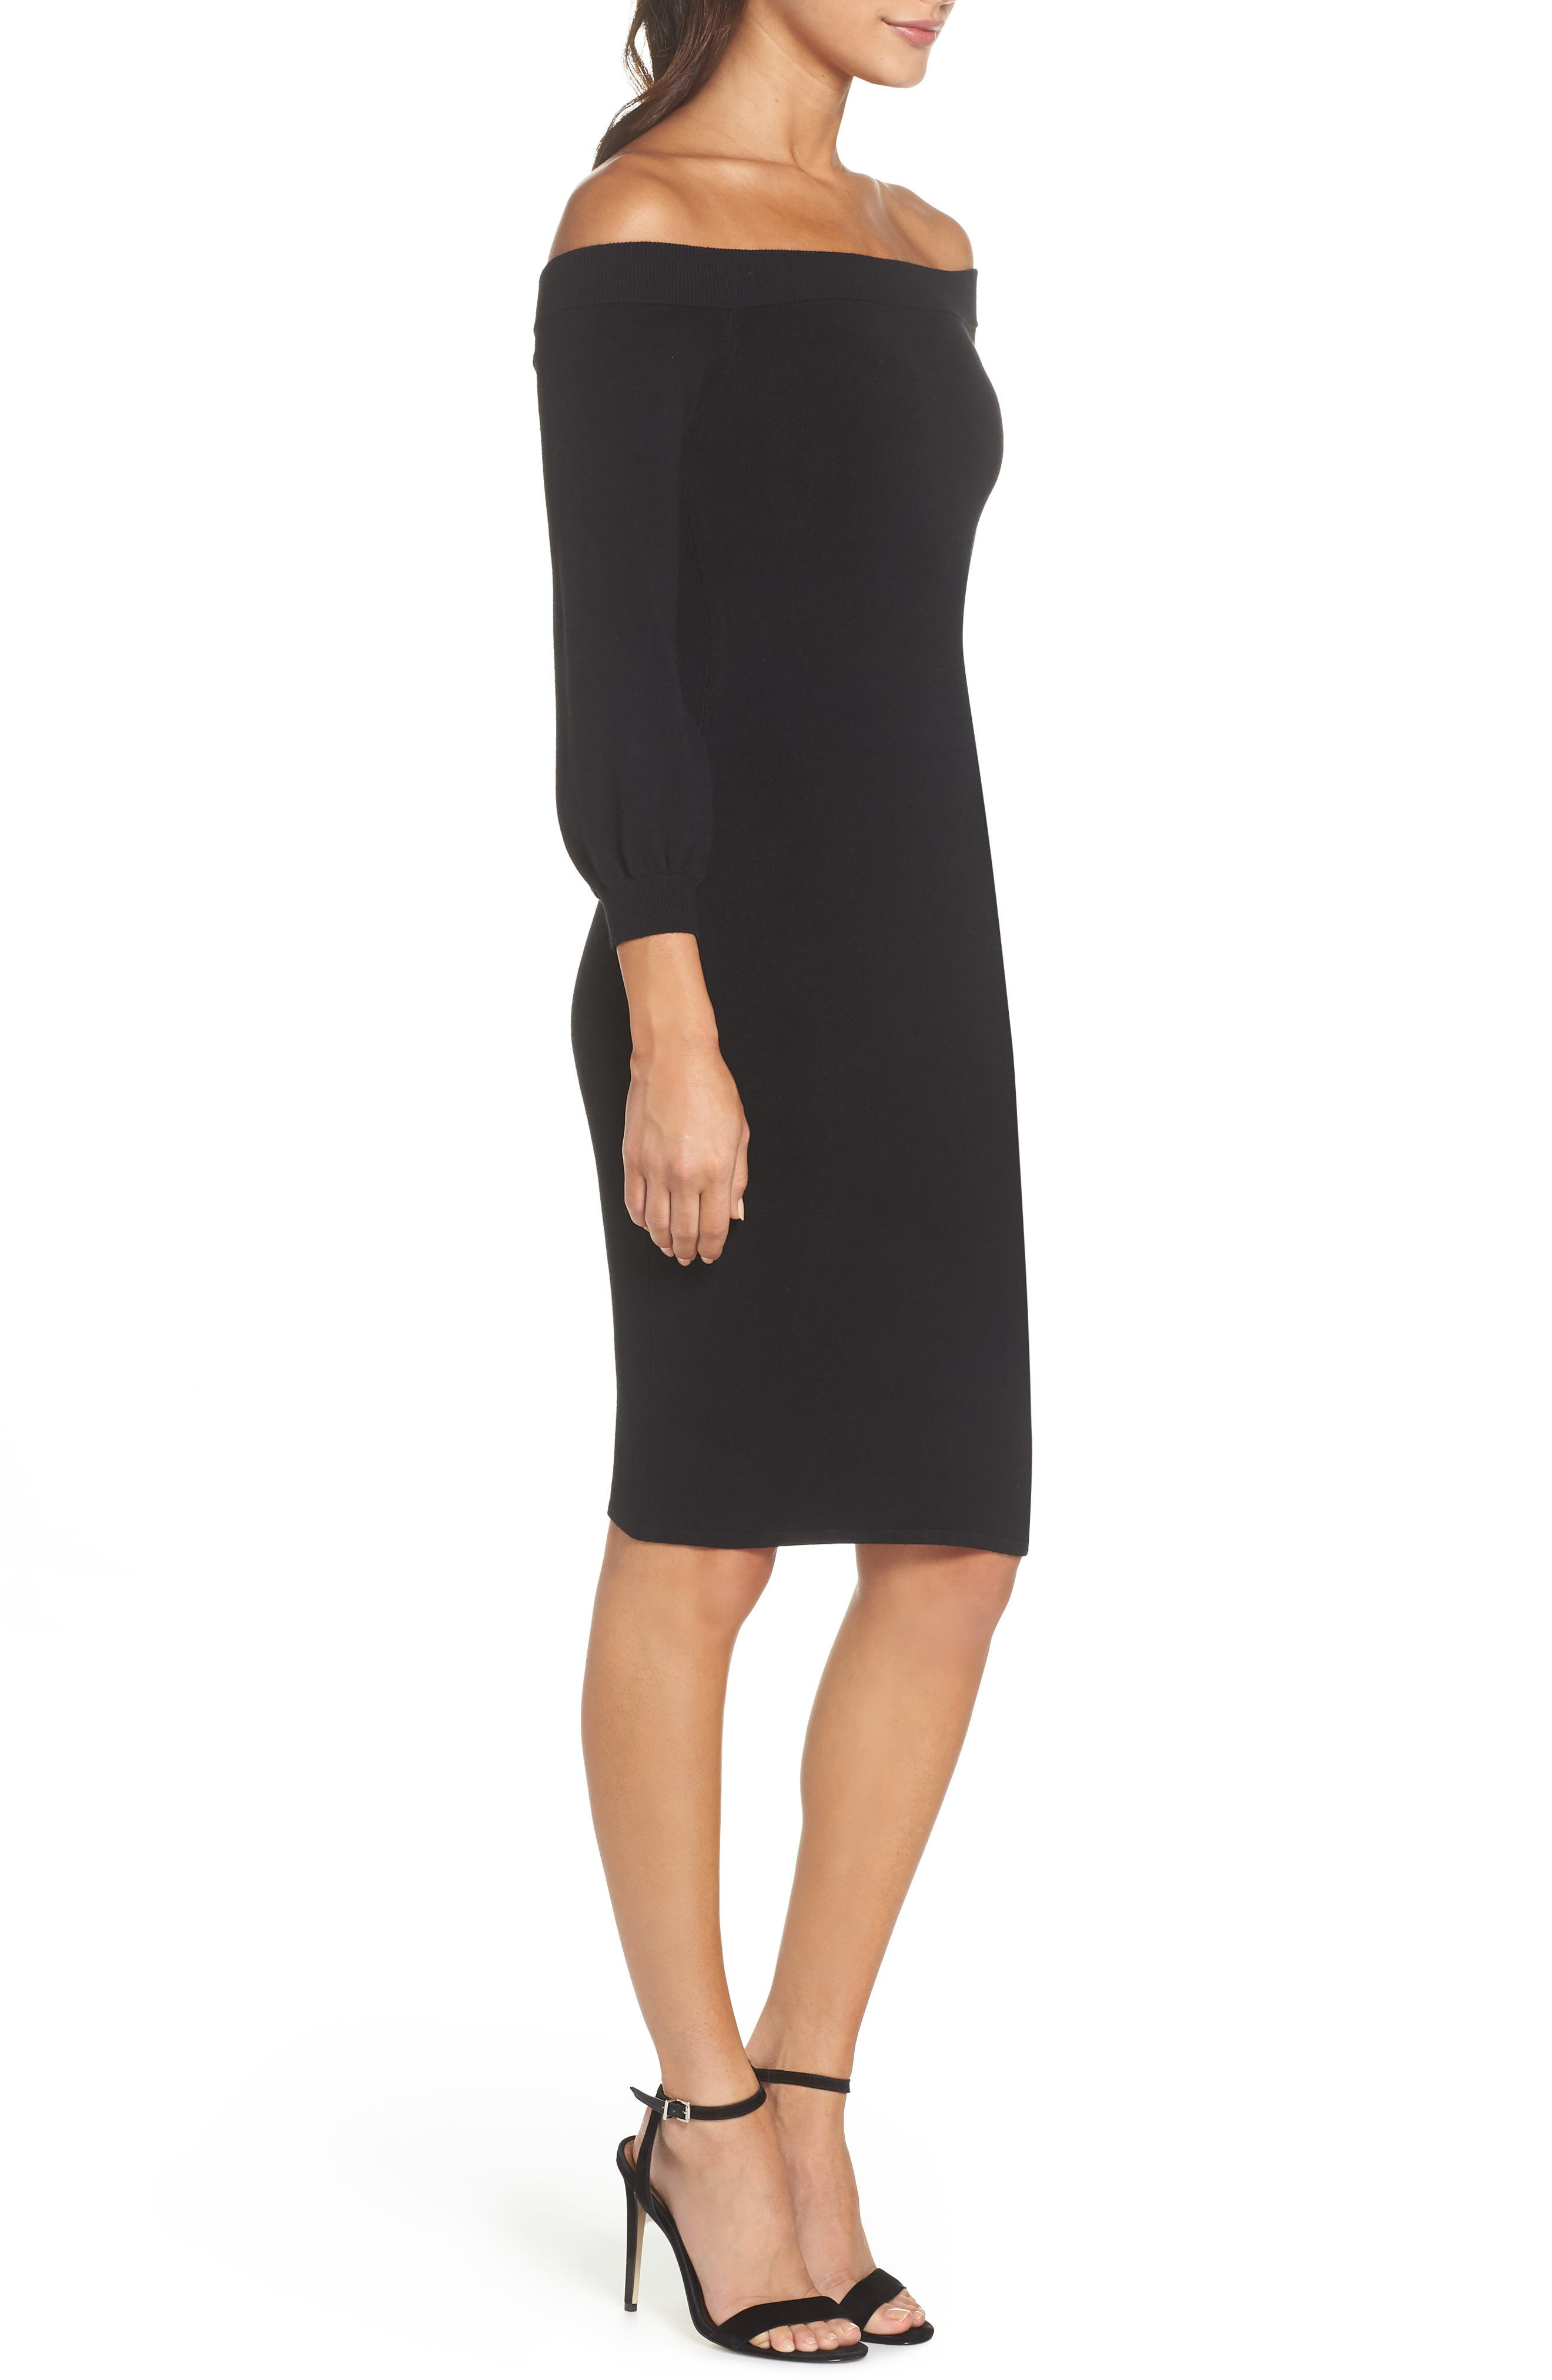 ALI & JAY, Standing Strong Off the Shoulder Midi Sweater Dress, Alternate thumbnail 4, color, 001